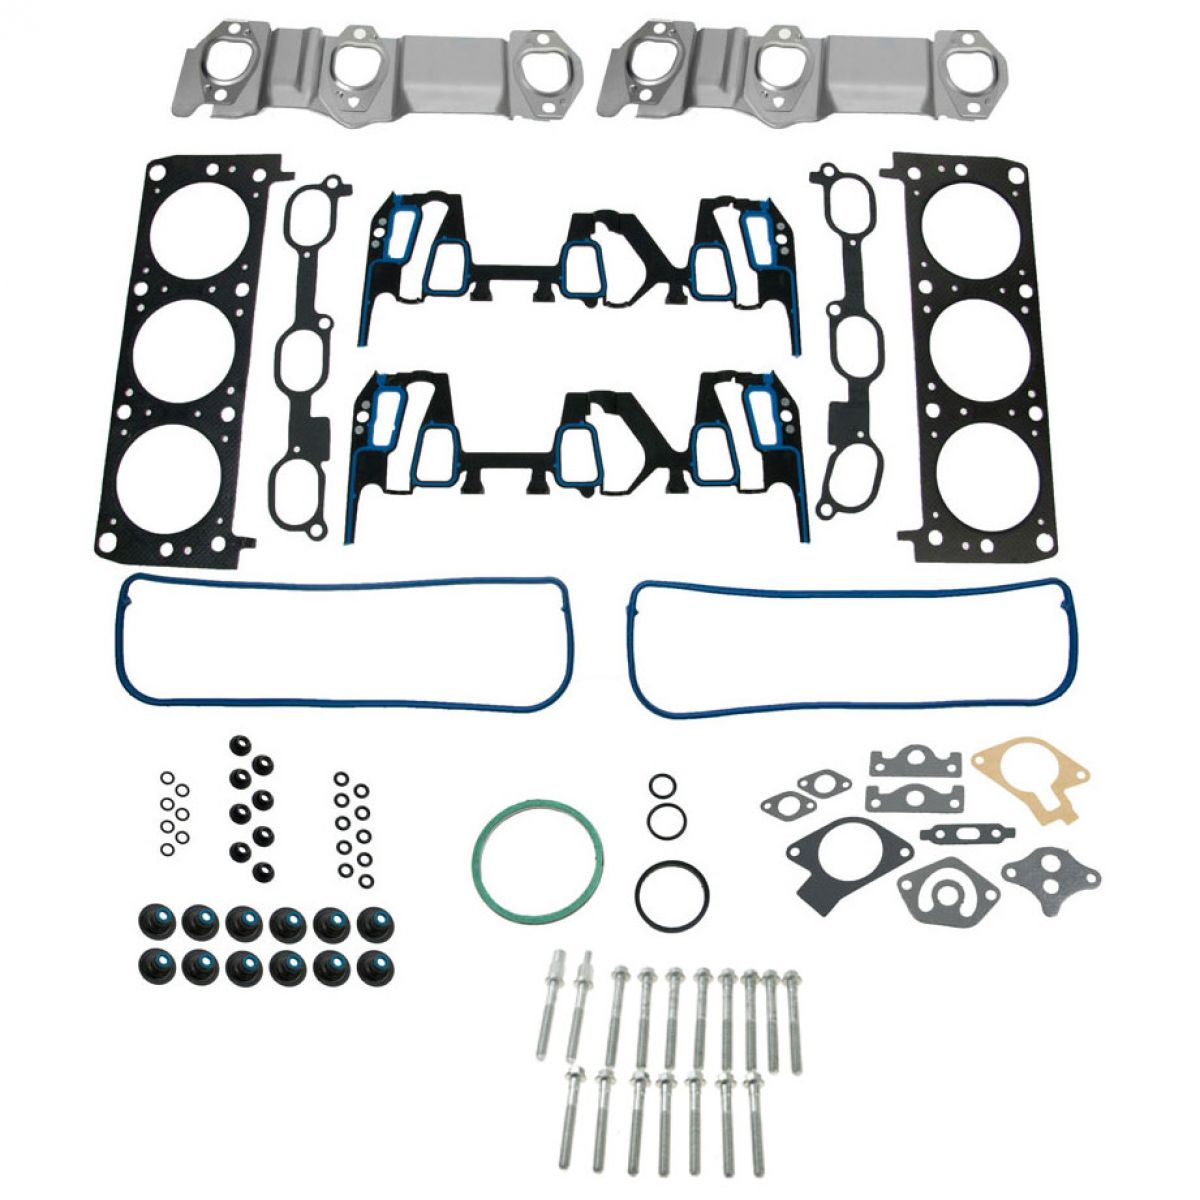 Engine Cylinder Head Gasket  U0026 Bolt Set For Buick Chevy